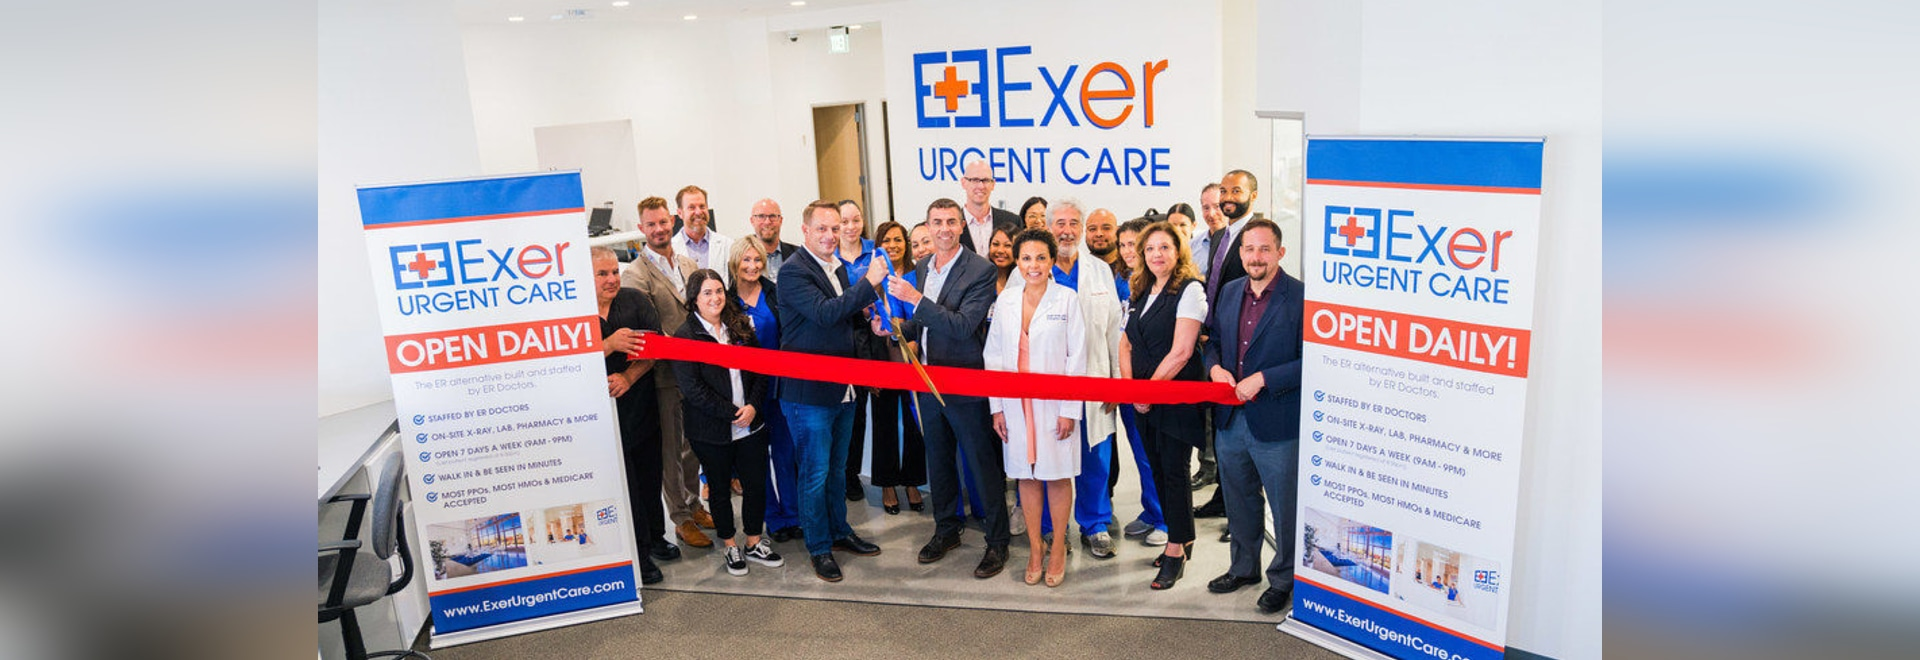 Exer Urgent Care Opens New Medical Facility, Continues Southern California Expansion